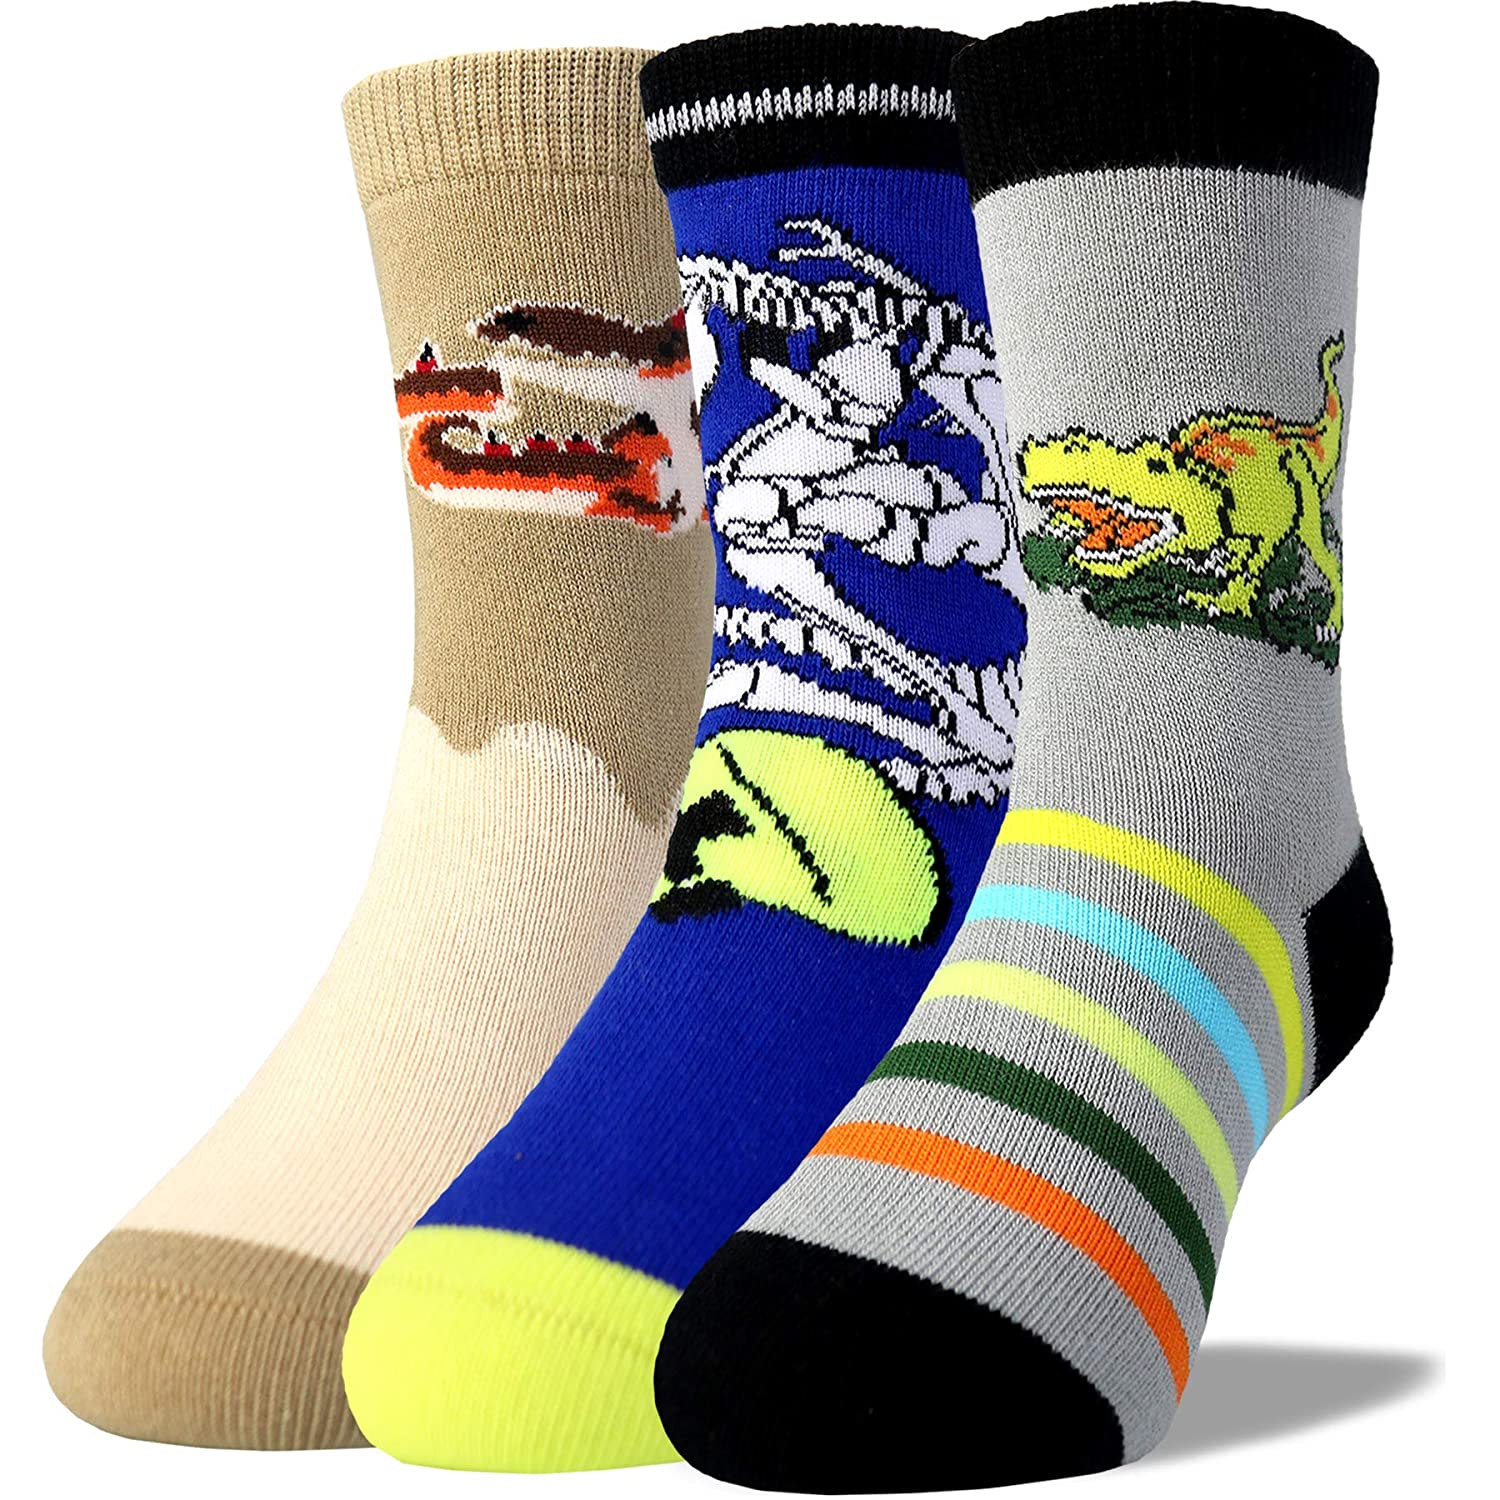 6823d2c8343b Kids Boys Fashion Cute Pattern Design Combed Cotton Dress Socks-Soft,  Non-Skid